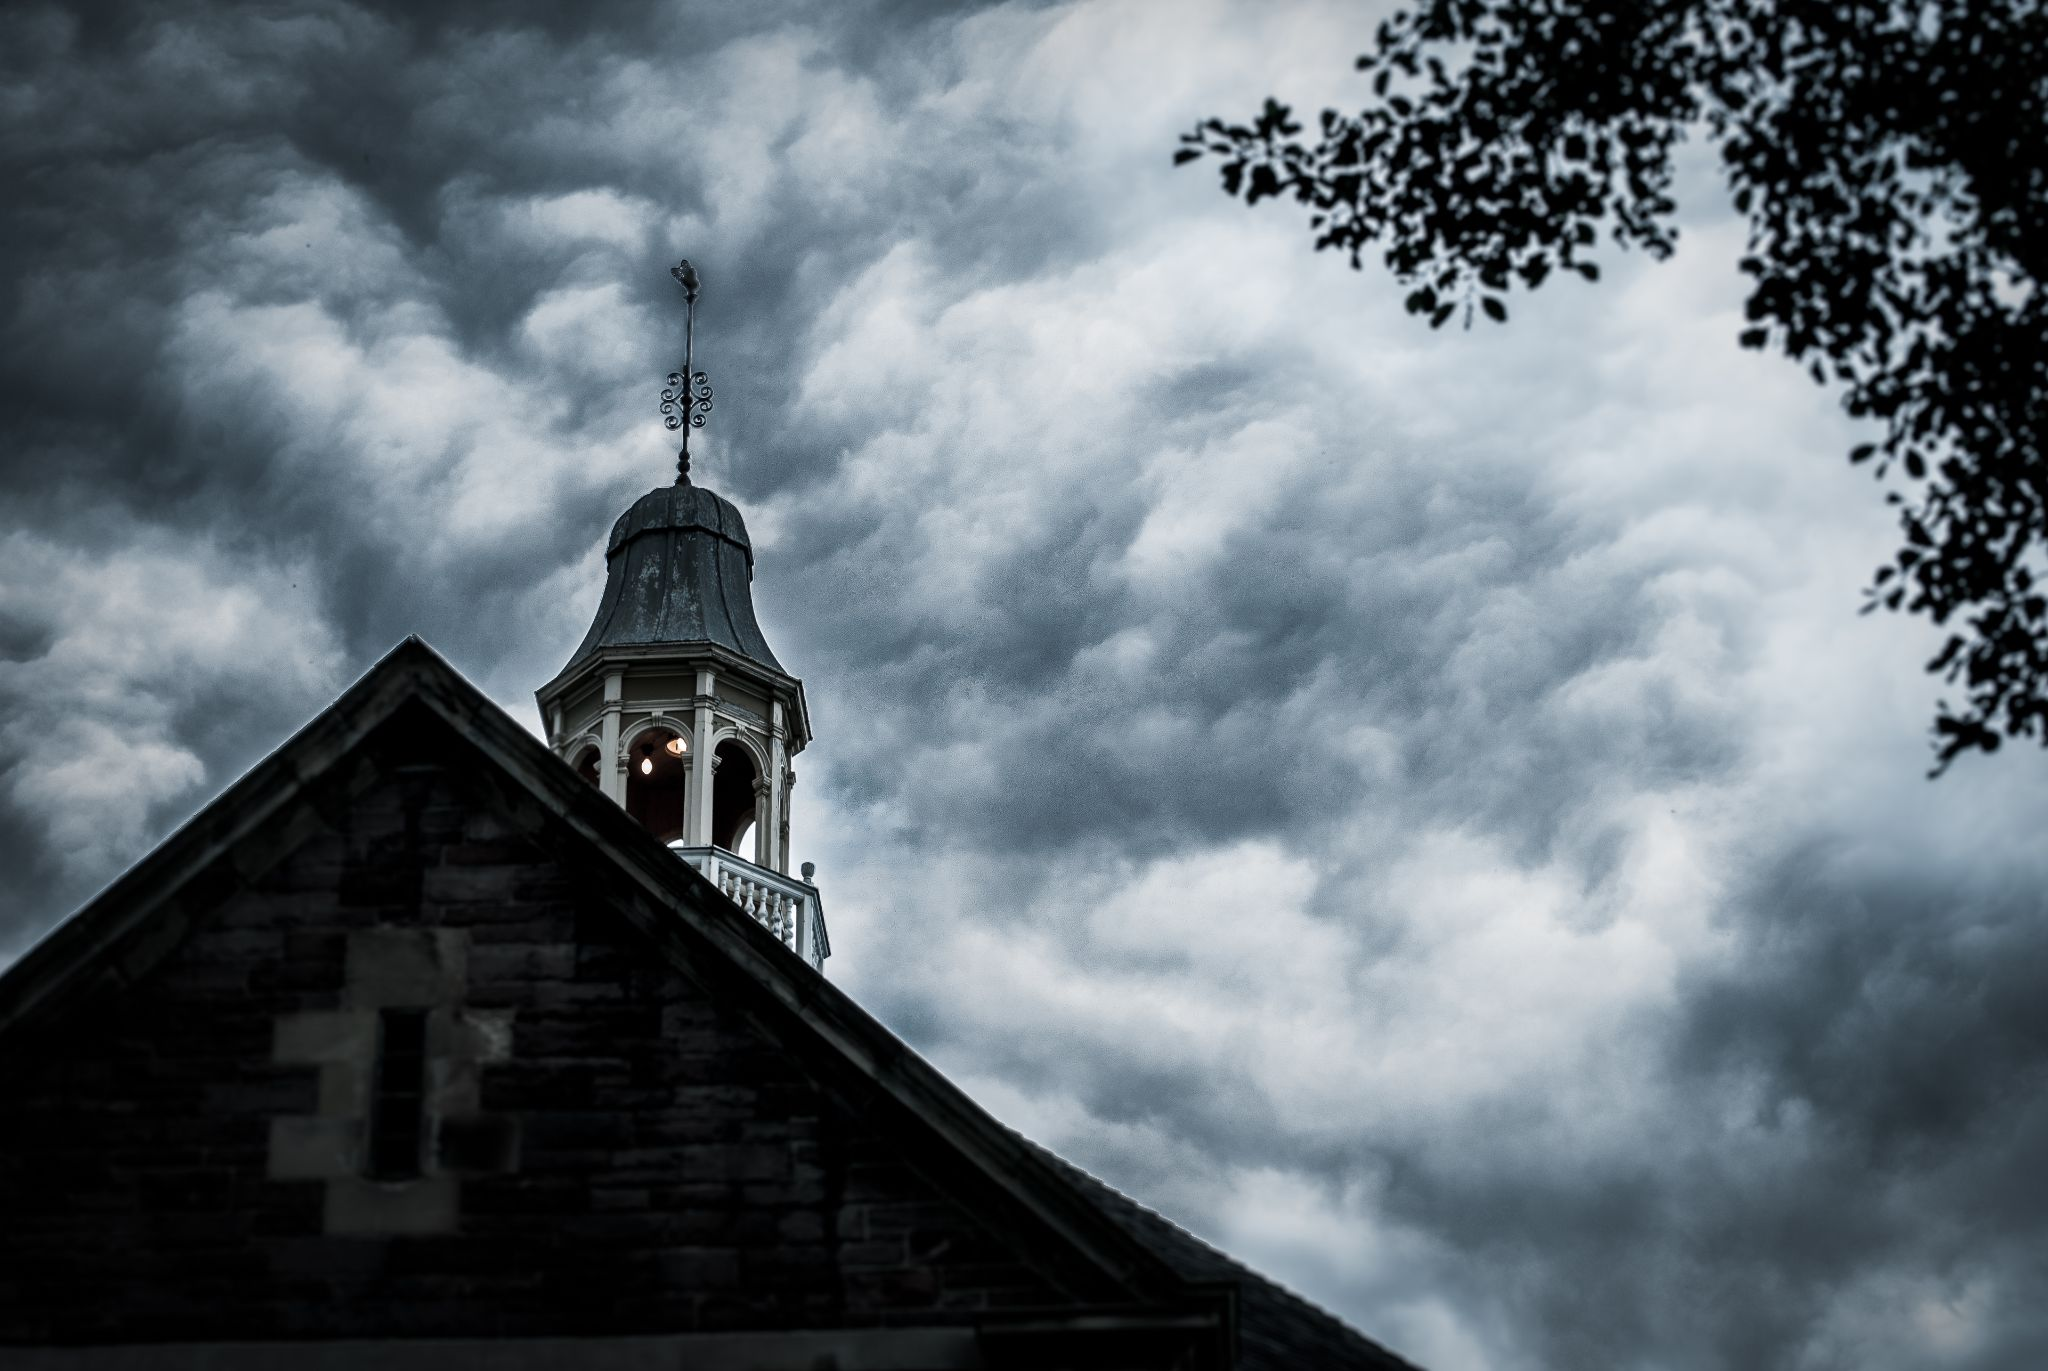 Steeple by Blak Yak Photography